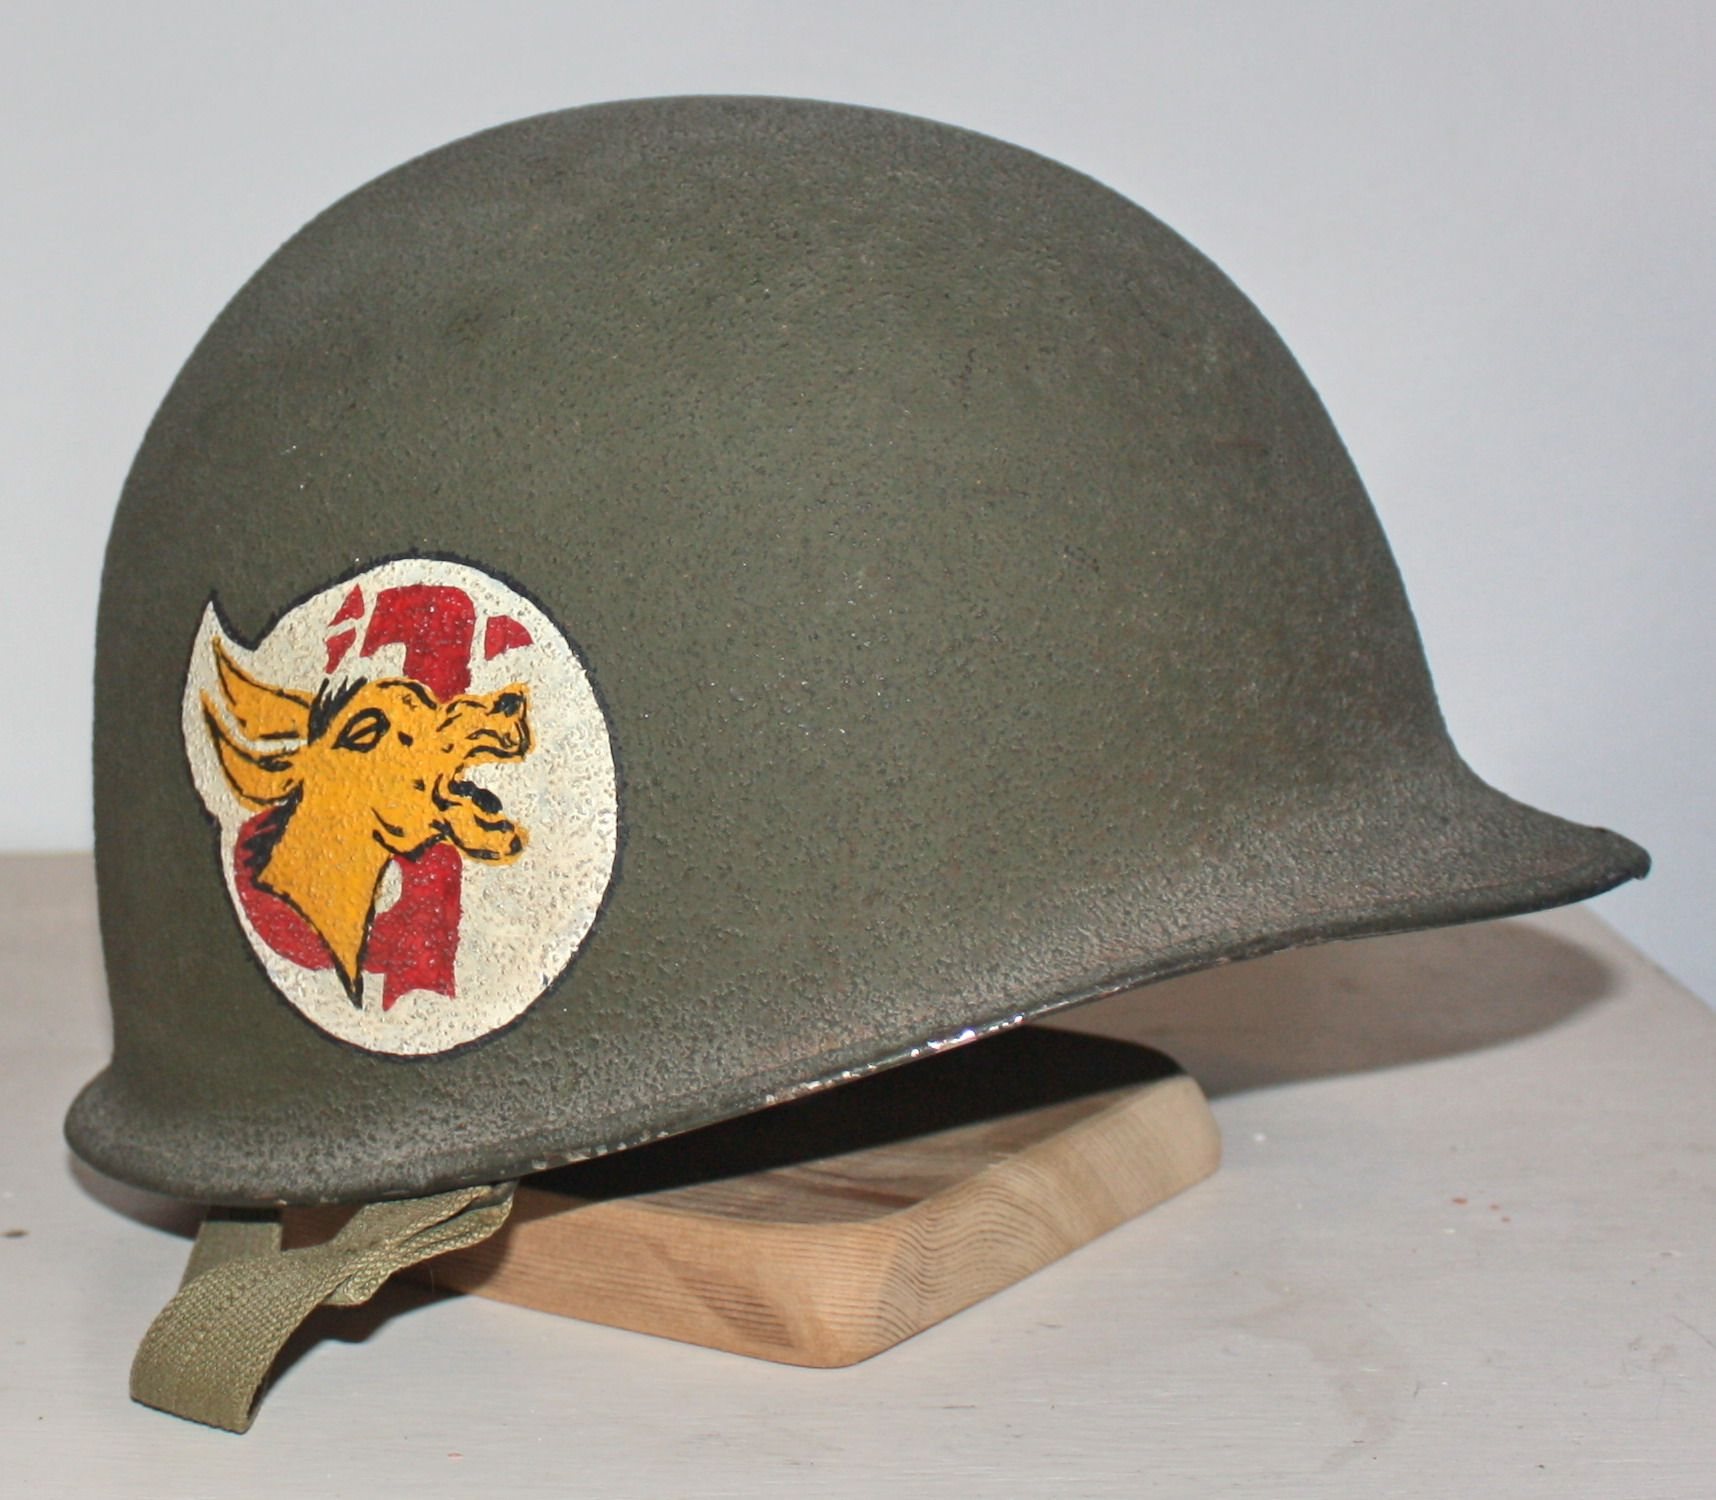 US M1 painted helmet with 98th field artillery battalion